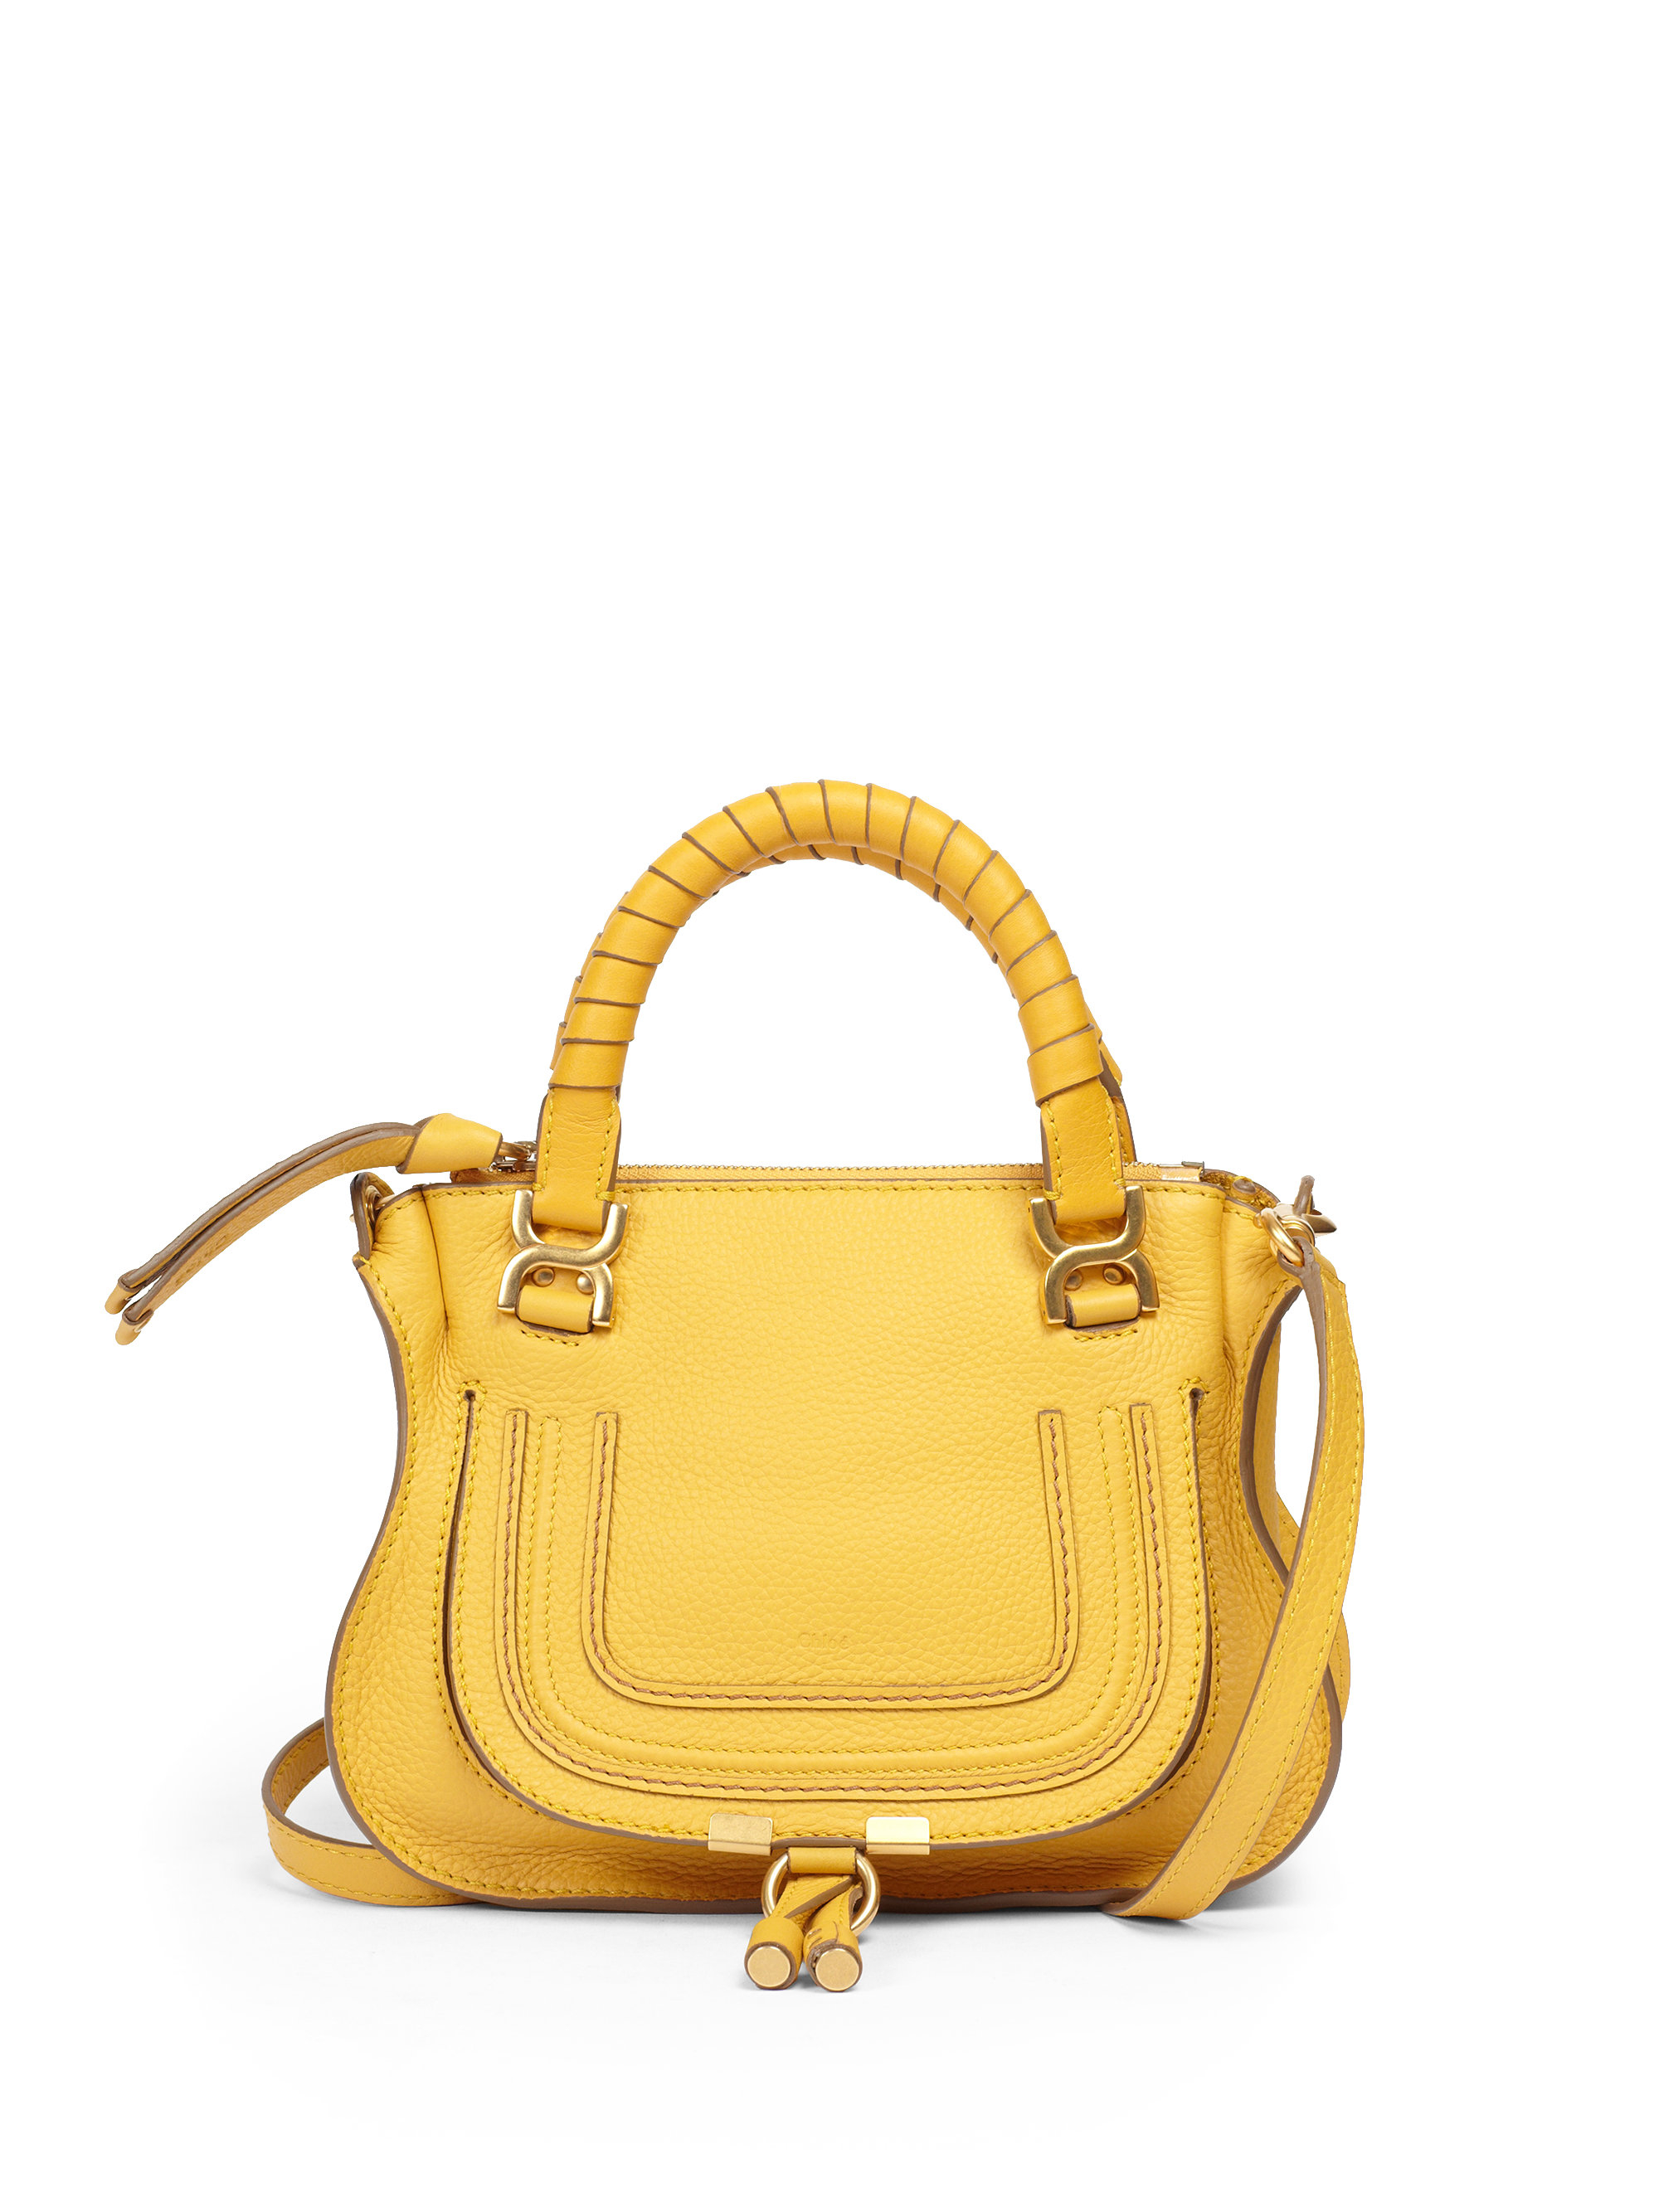 chlo mini marcie crossbody bag in yellow sunray lyst. Black Bedroom Furniture Sets. Home Design Ideas